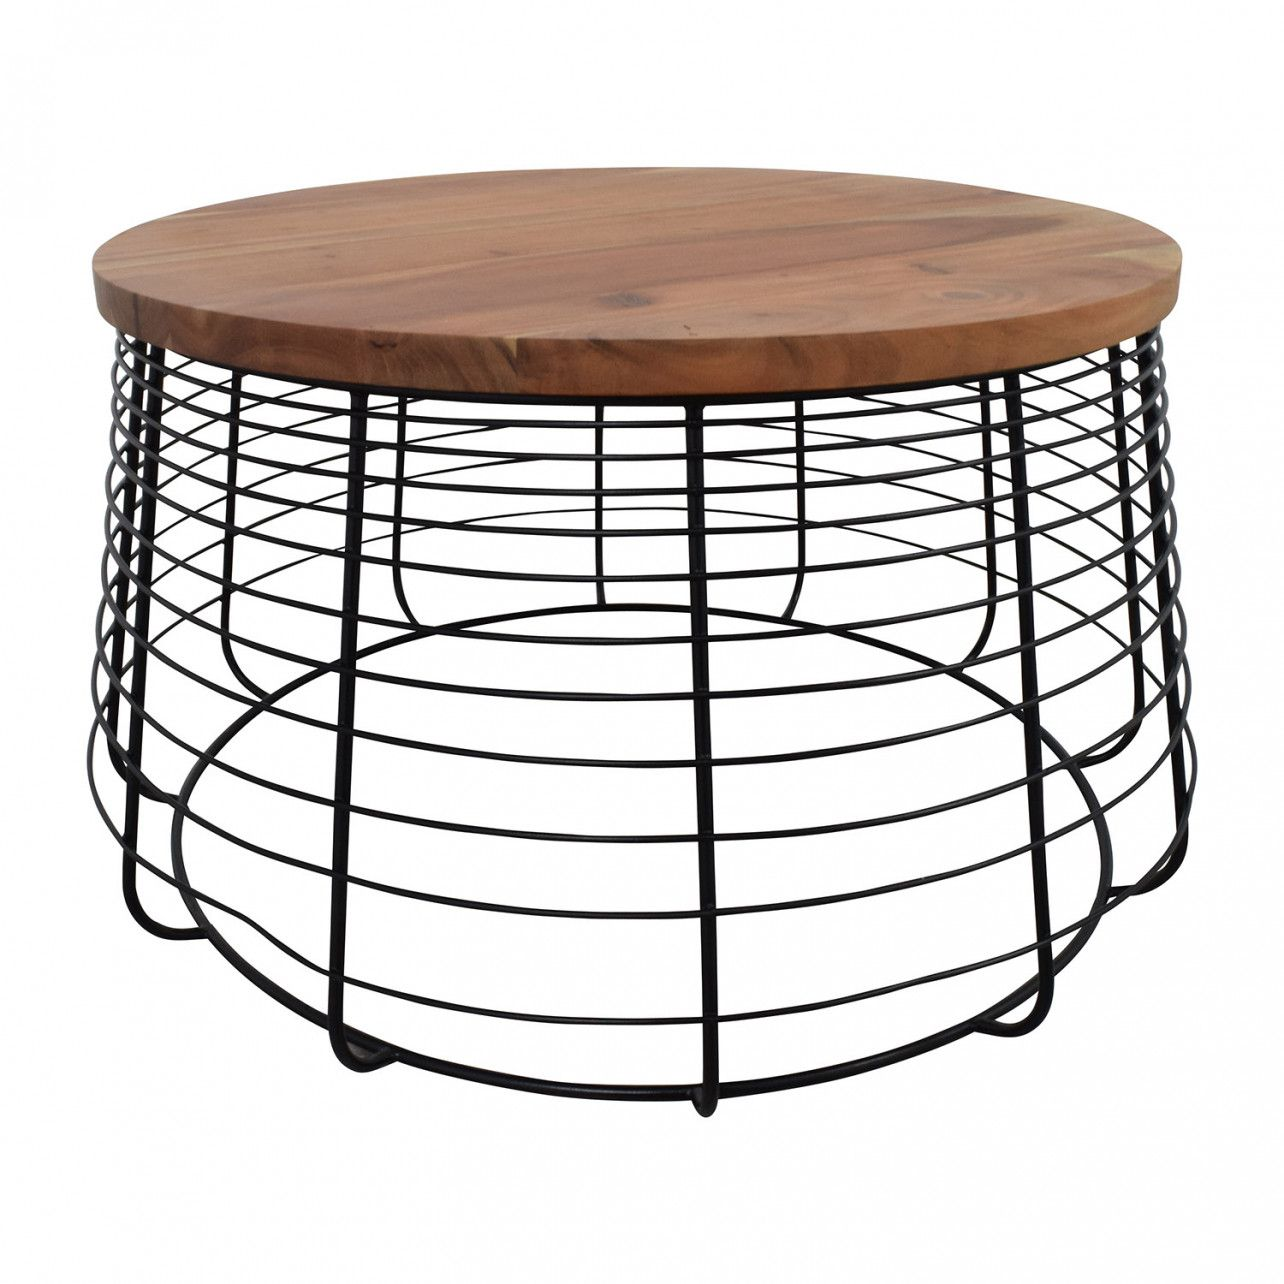 55 Best Of Round Coffee Table Canada 2019 Round Coffee Table Coffee Table Canada Table [ 1284 x 1284 Pixel ]